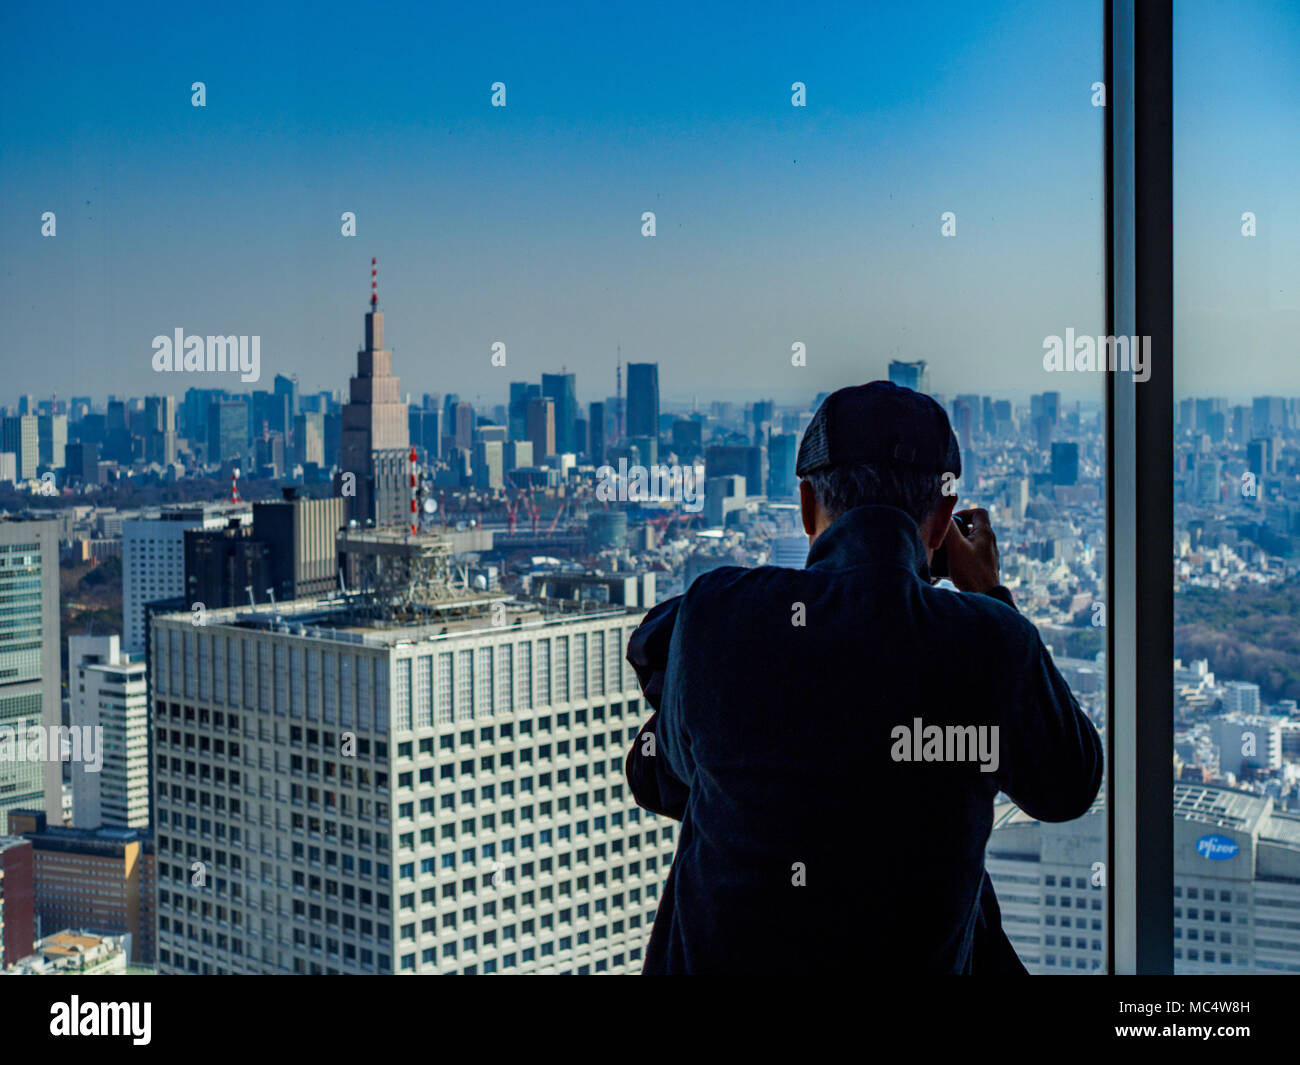 Tokyo Tourism Japan Tourism  - a tourist takes a photo from the viewing gallery of the Tokyo Metropolitan Government Towers in Tokyo Japan - Stock Image